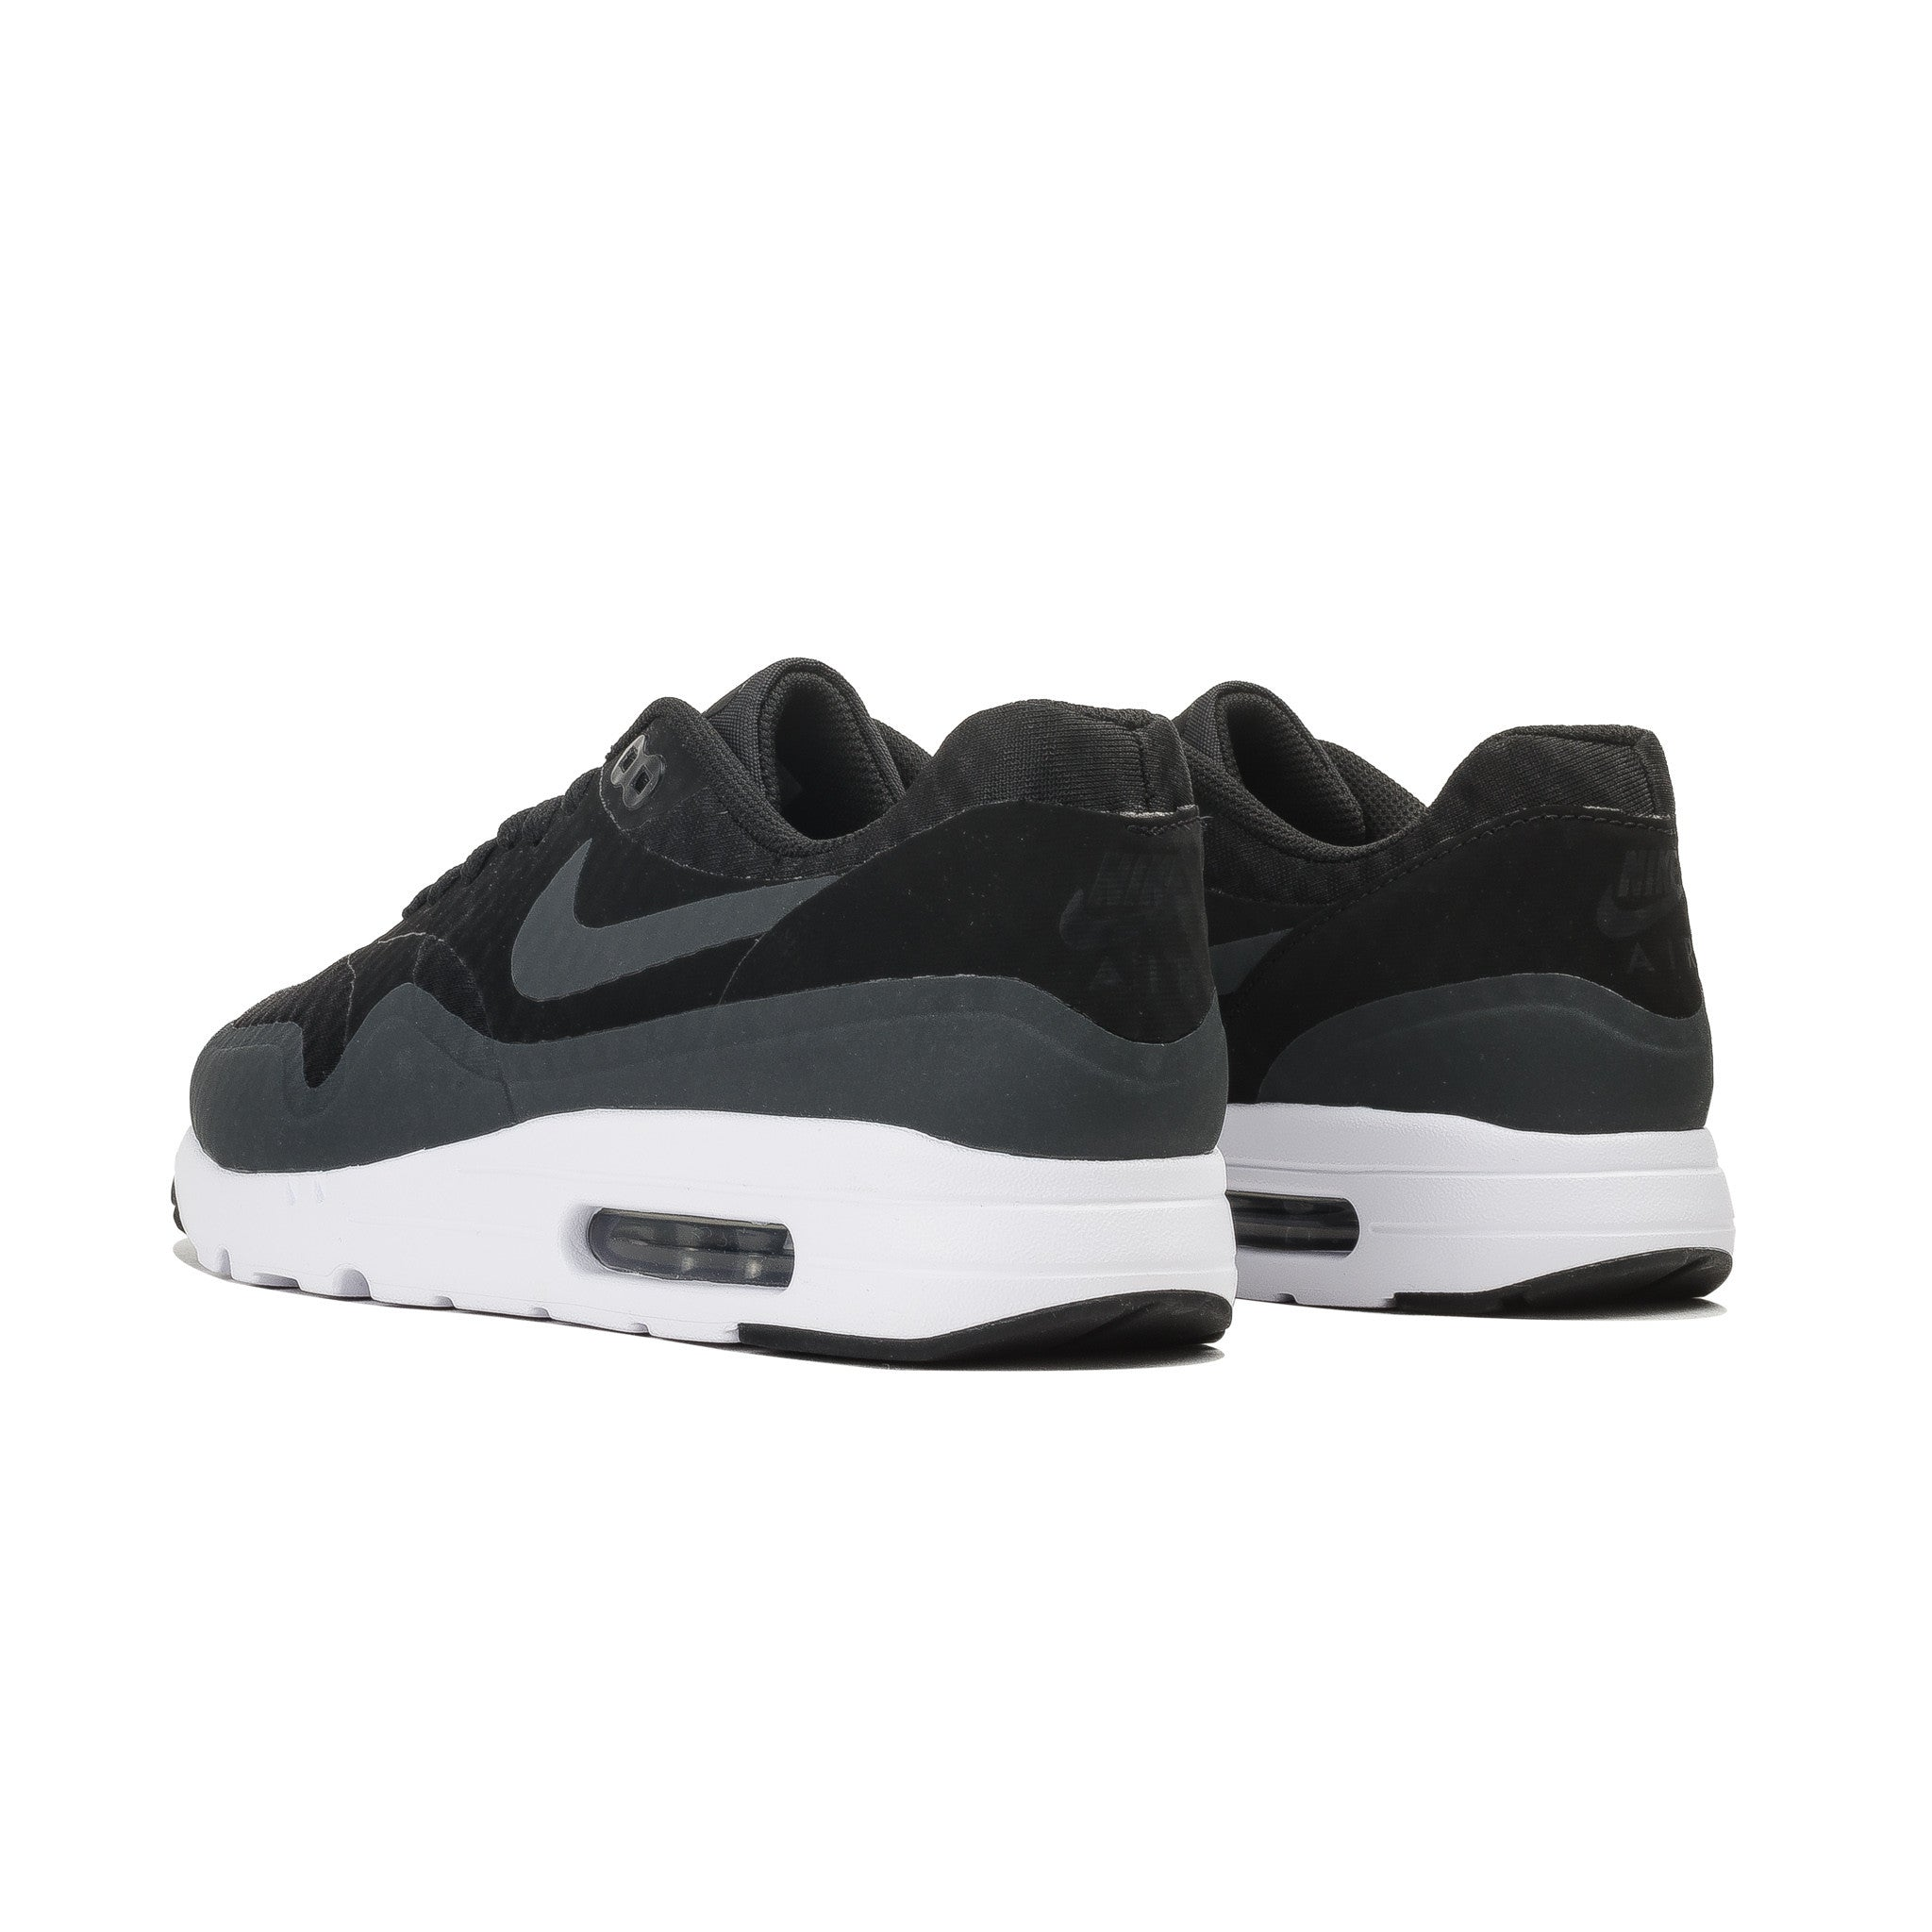 Air Max 1 Ultra Essential 819476-004 Black